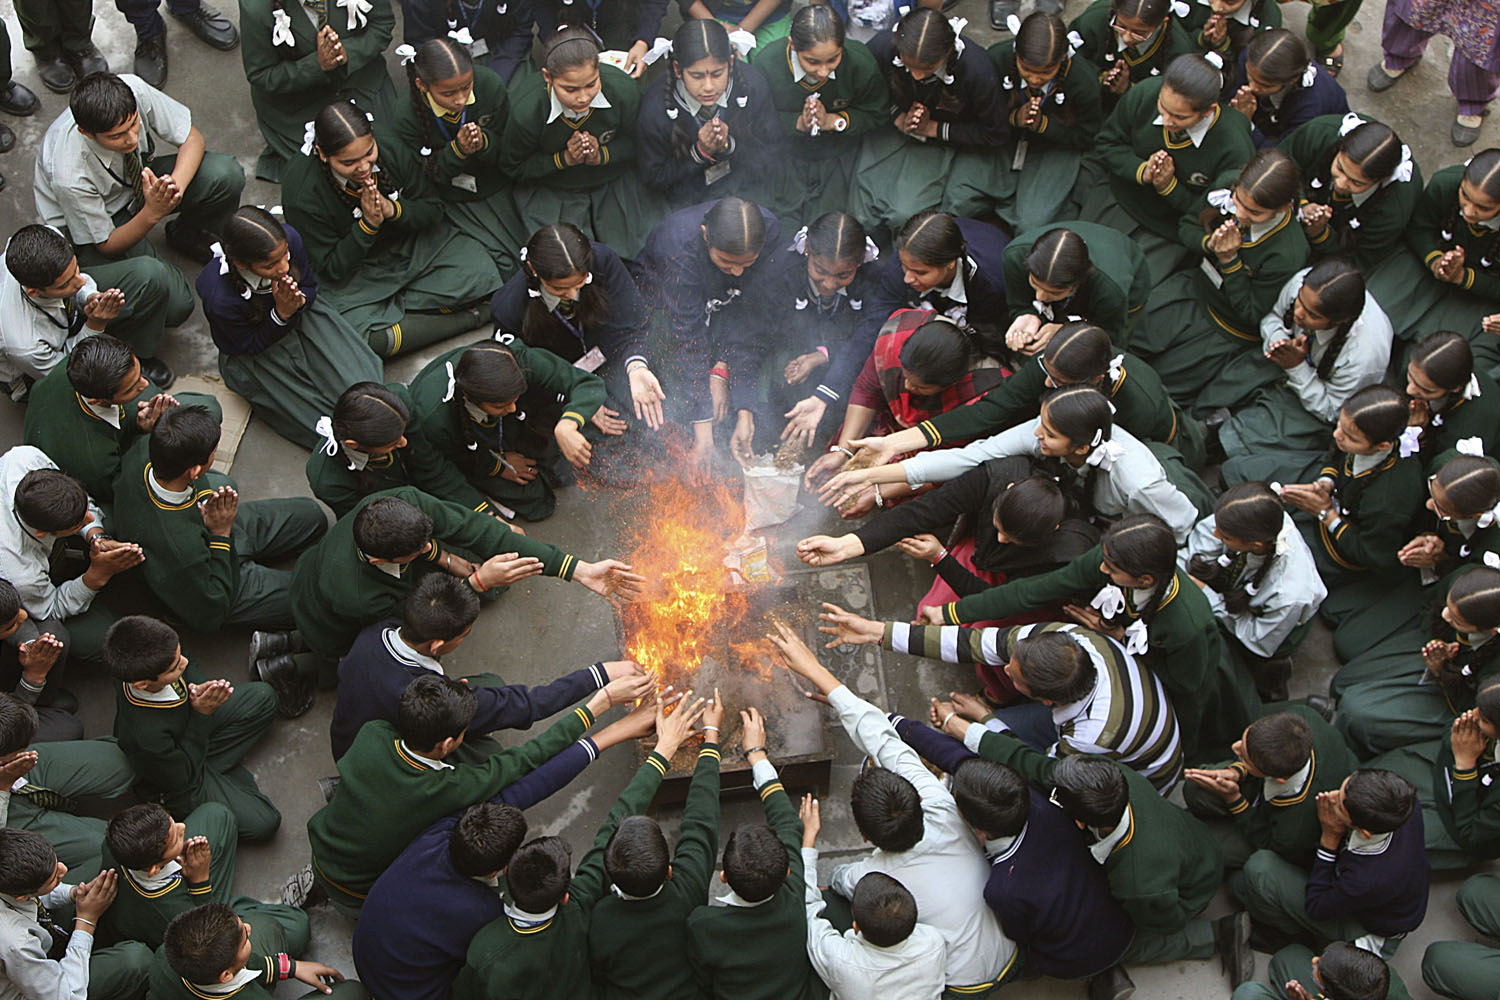 Mar. 25, 2014. Students attend a prayer ceremony in tribute to the passengers and crew onboard the missing Malaysia Airlines flight MH370 inside a school in Jammu. Bad weather and rough seas on Tuesday forced the suspension of the search for any wreckage.